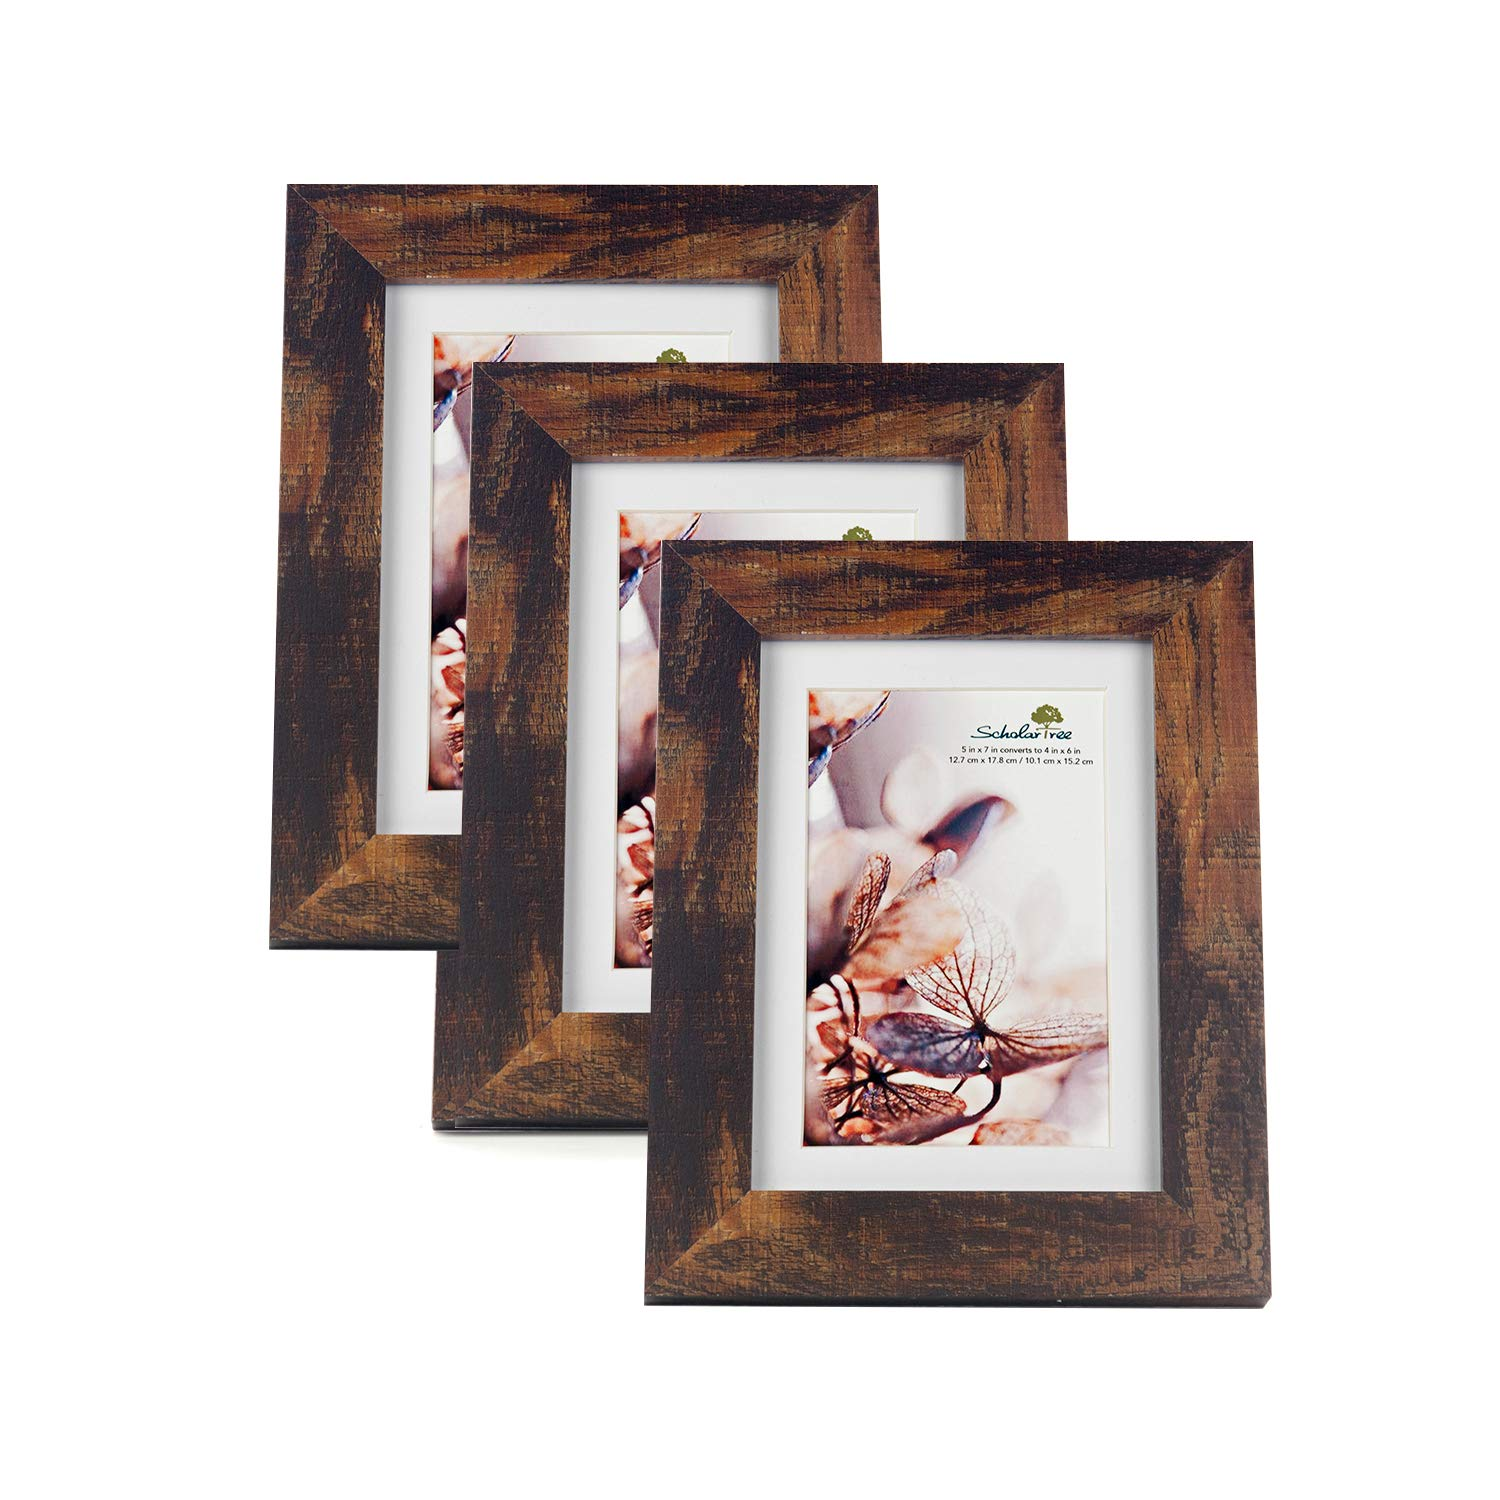 Scholar tree Wooden Picture Frame Photo Frames 5 x 7 inches, 8 x 10 inches, 11 x 14 inches (Brown, 5 x 7 inches) by Scholar tree